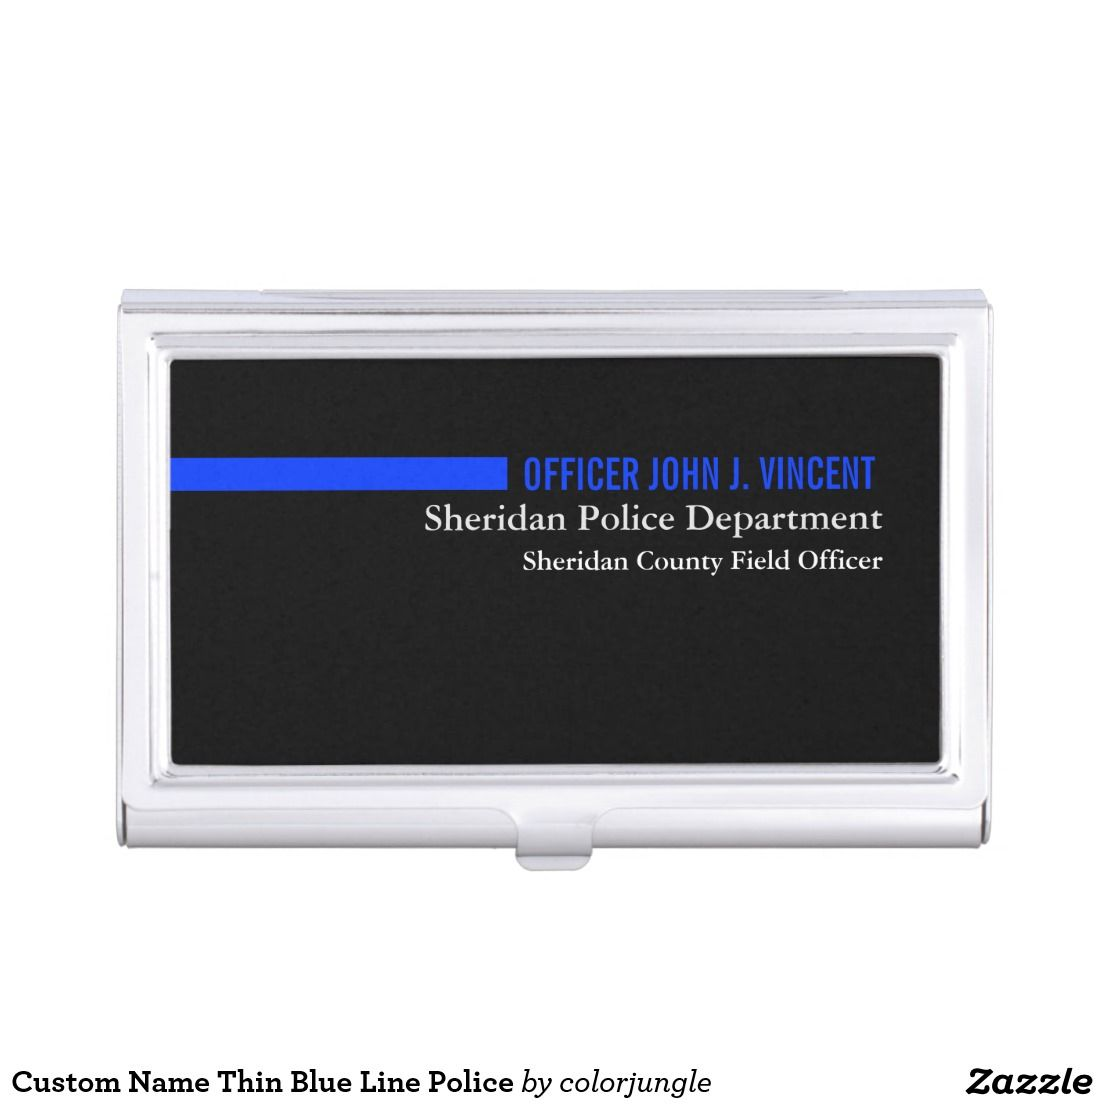 Custom Name Thin Blue Line Police Business Card Holder | Business ...